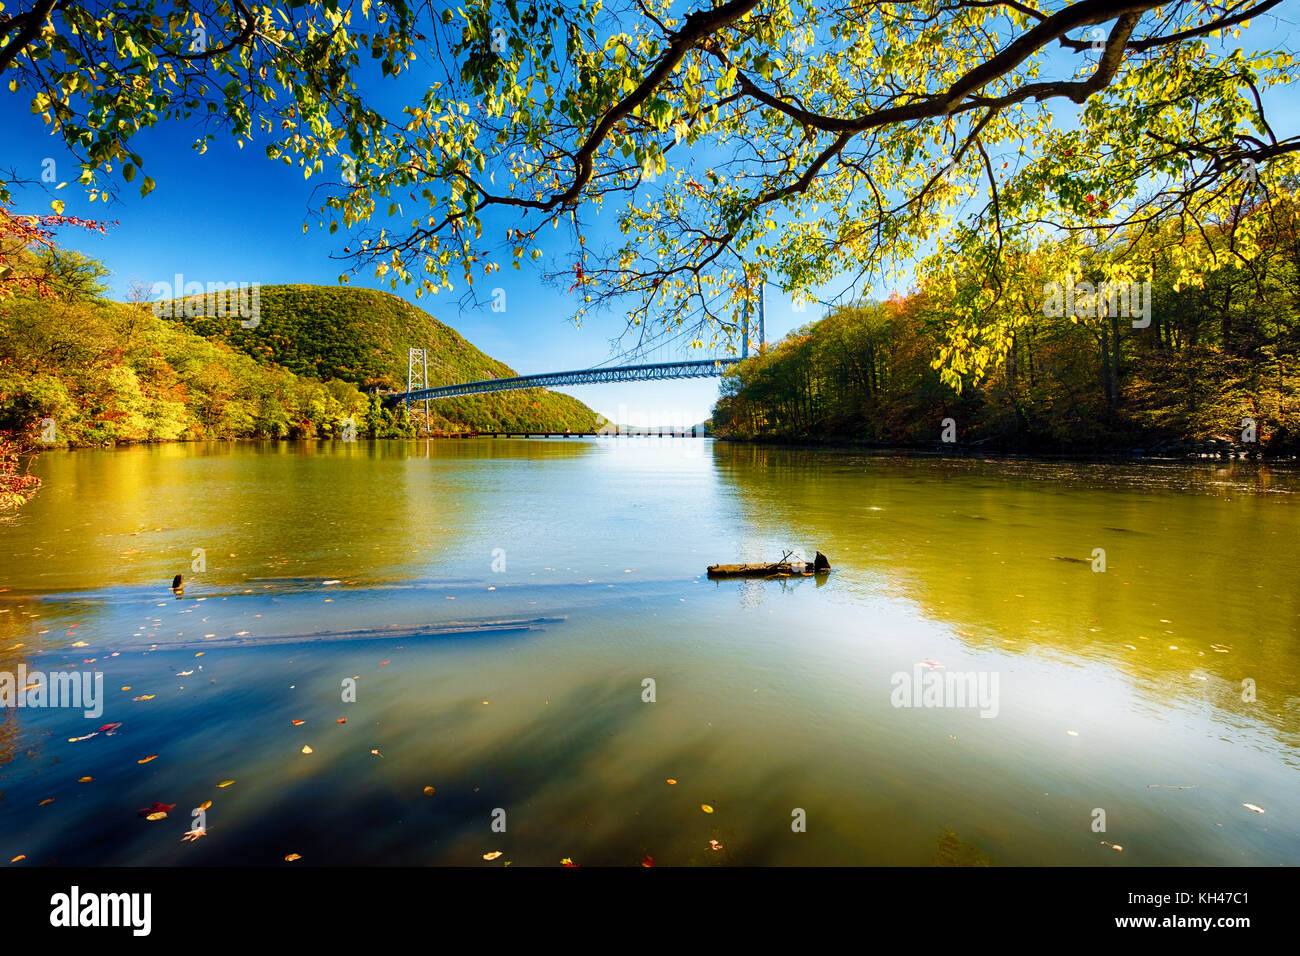 Ostwärts Low Angle View der Bear Mountain bridge, Montgomery, New York Stockbild